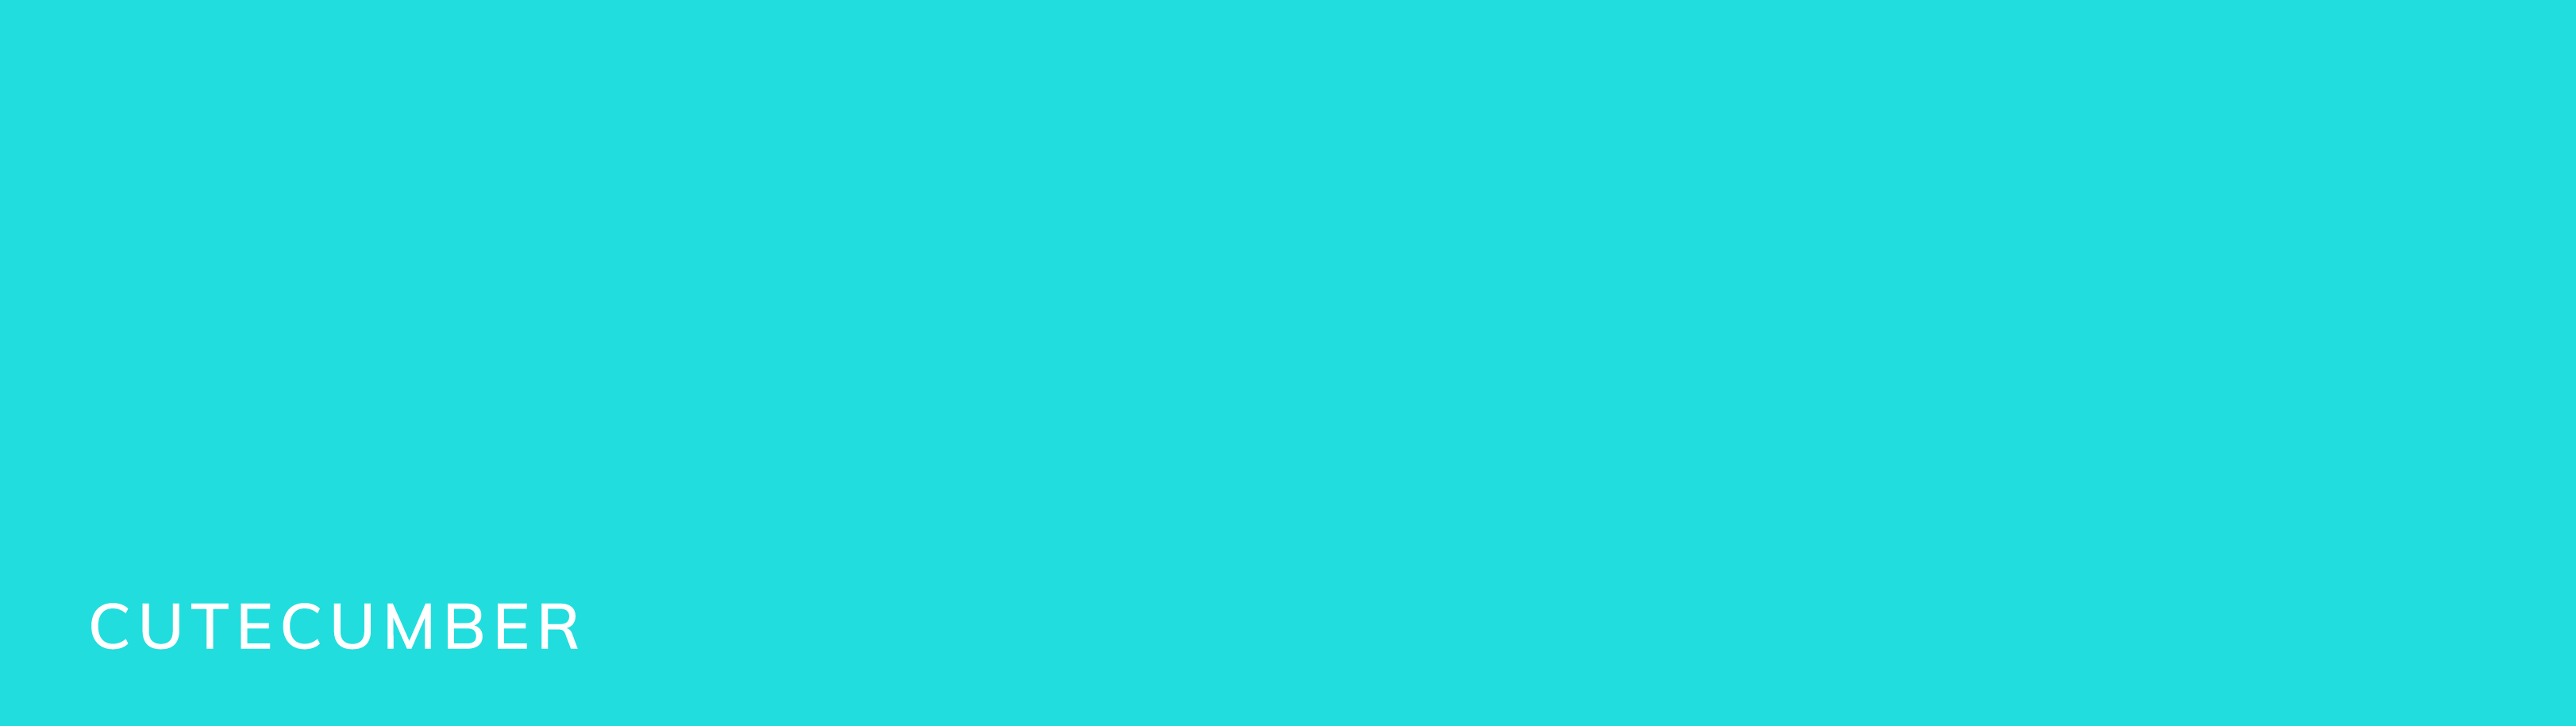 Another secondary brand color is this light turqouise/ bright teal color that looks like cucumber spindrift seltzer. We named it cutecumber